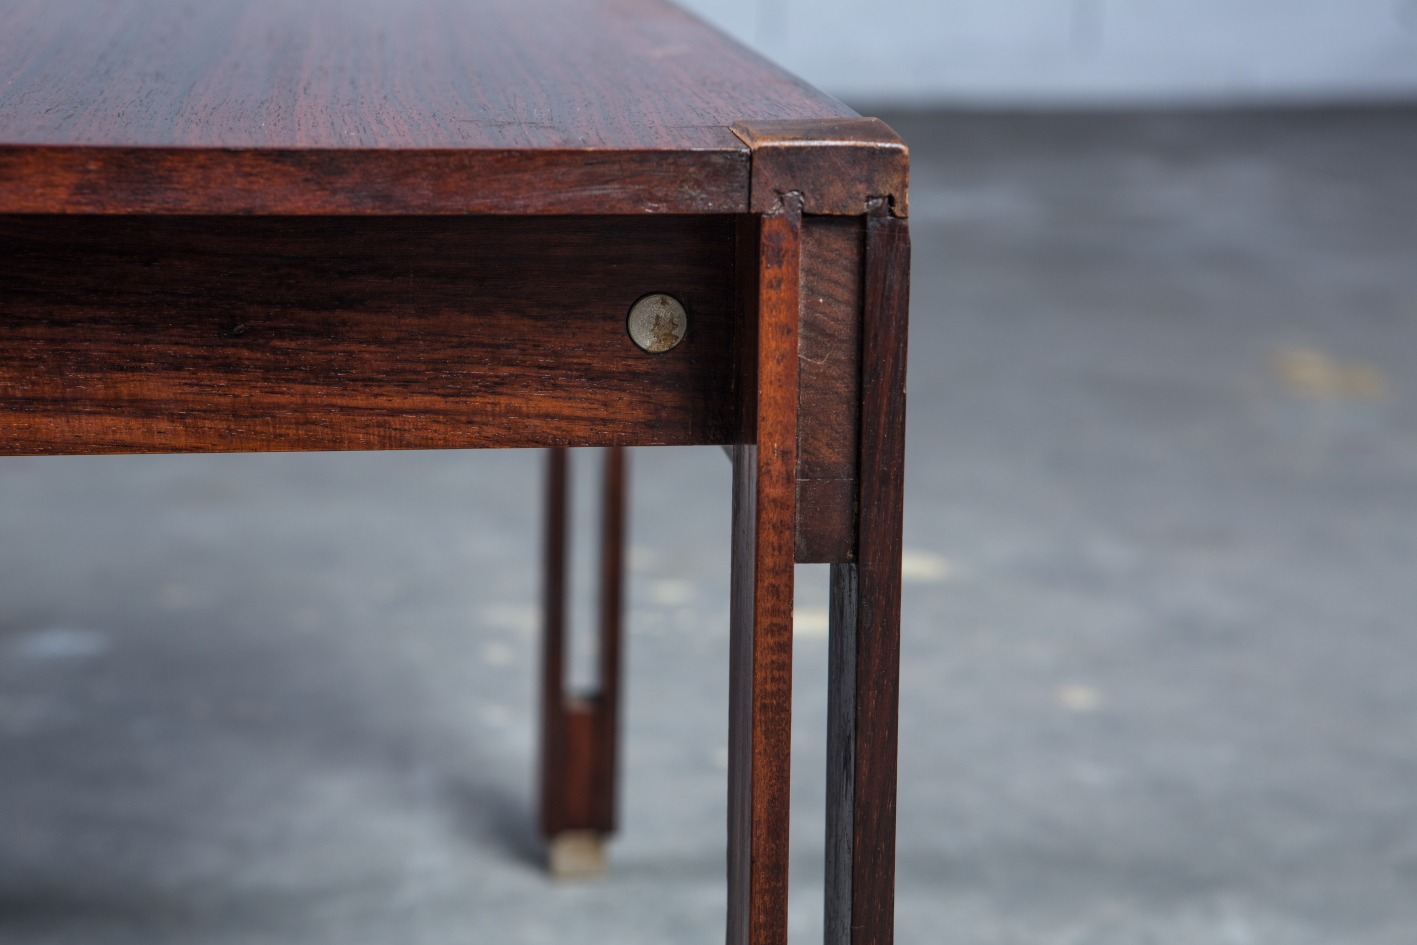 Low table with drawer - Ico Parisi for Mim - Detail